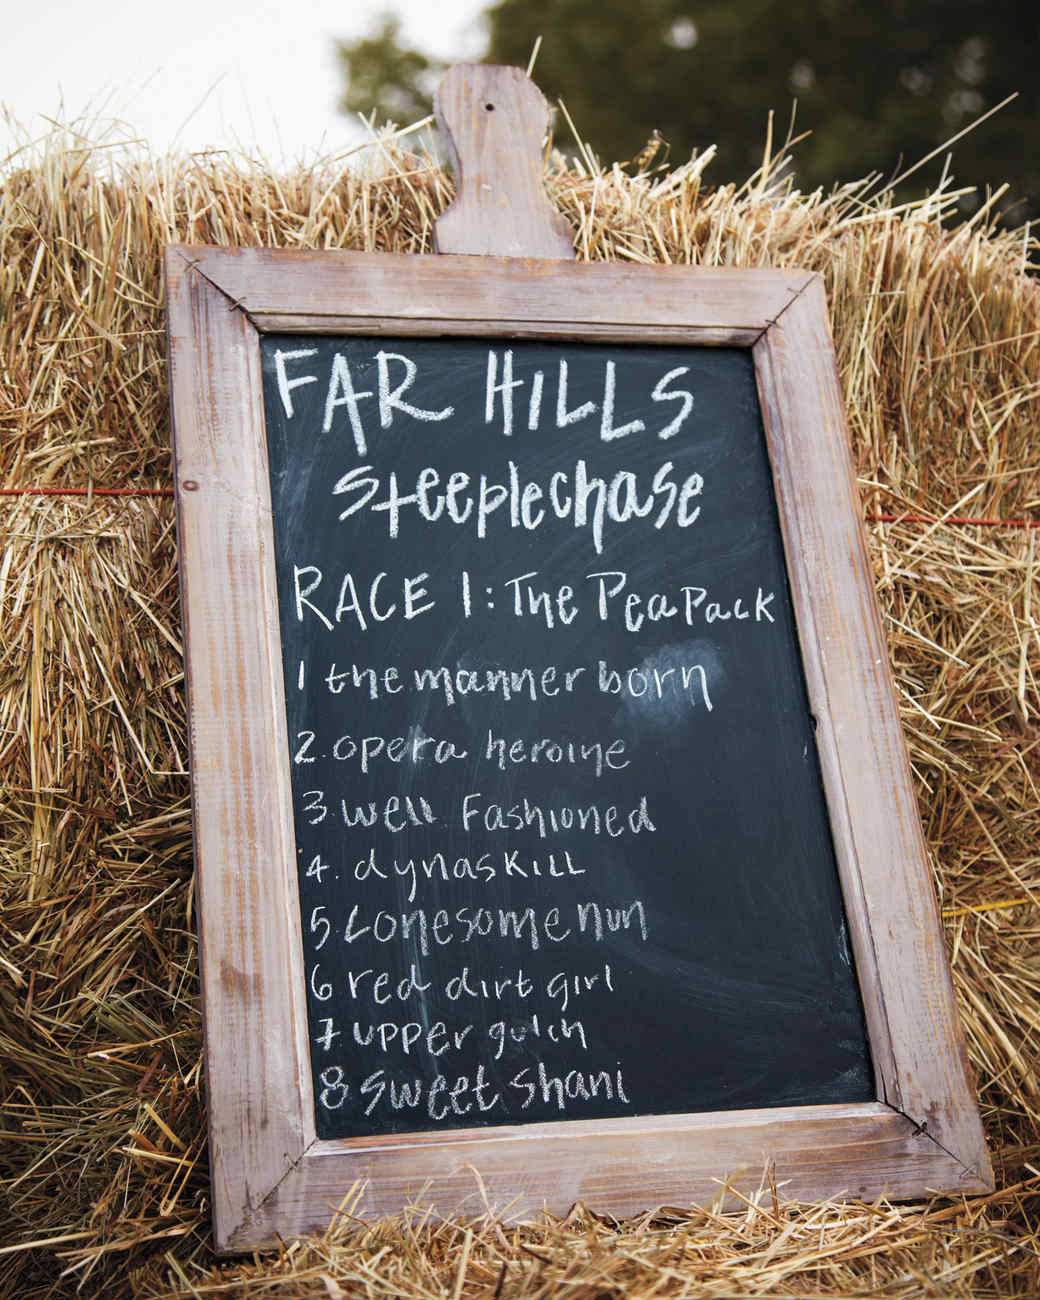 steeplechase-sign01-mld108130.jpg